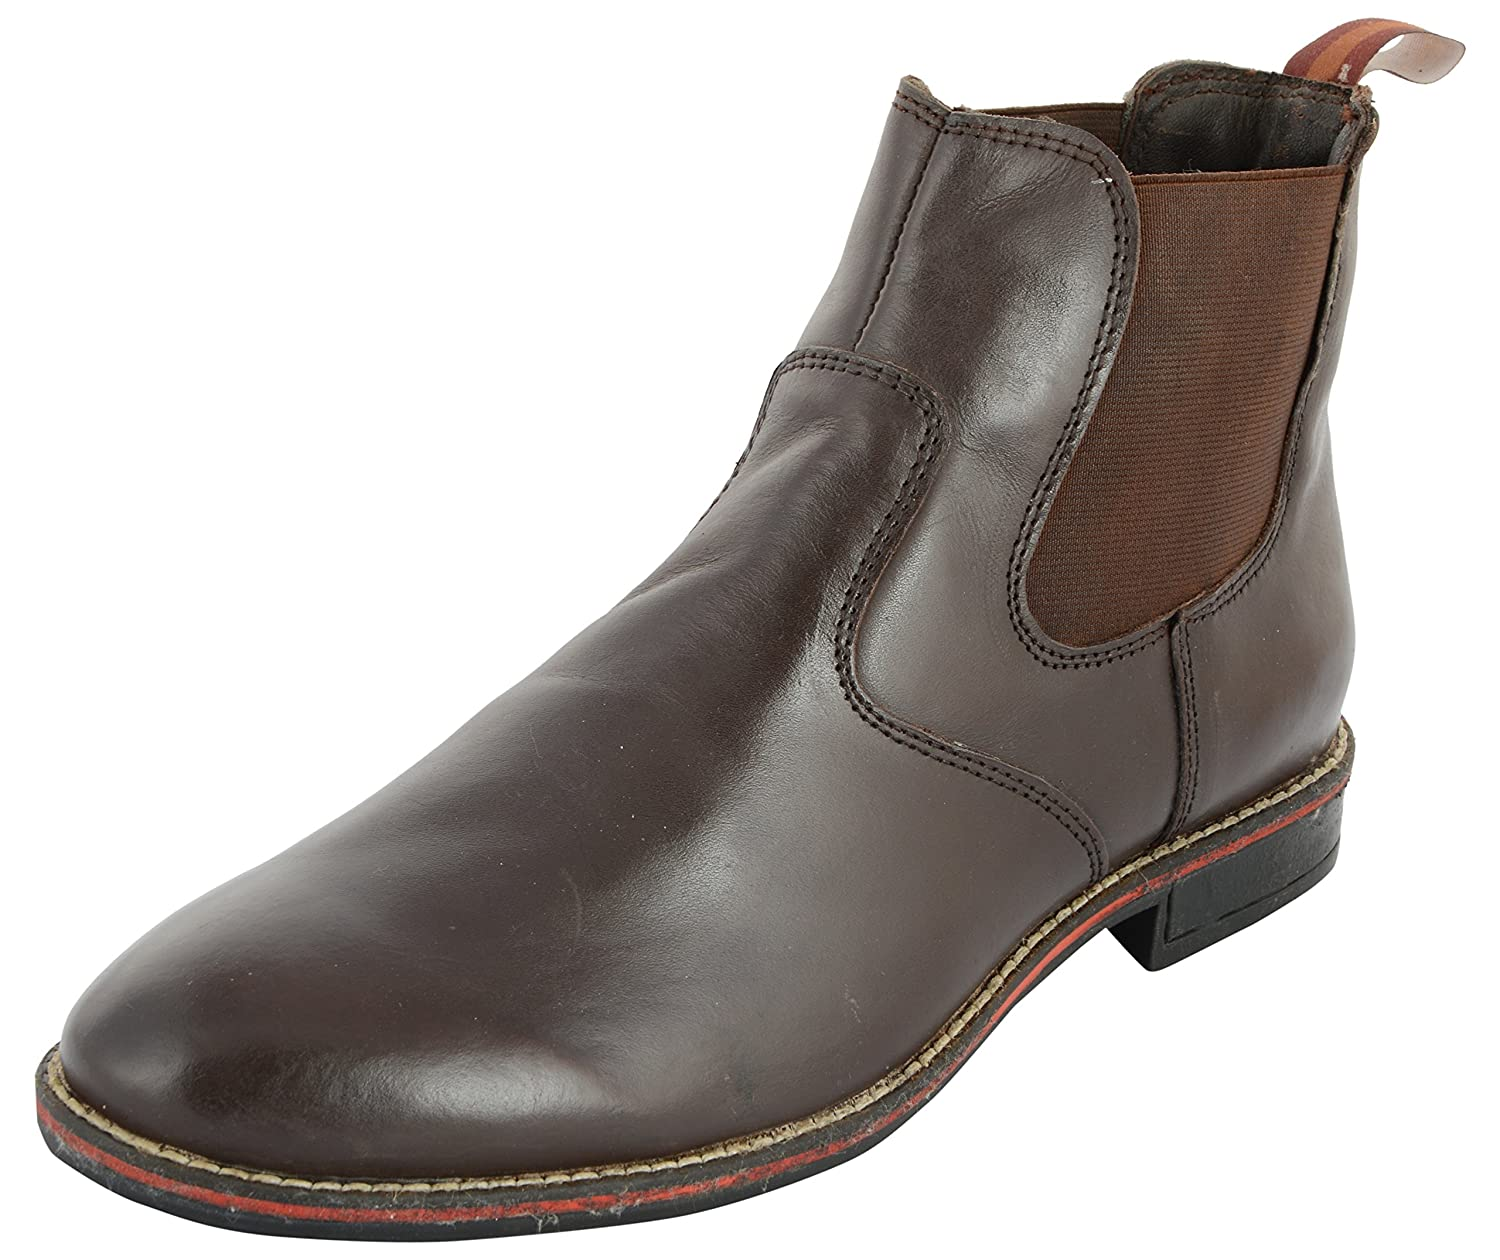 Urban Touch Men S Brown Leather Chukka Boots 7 Uk Buy Online At